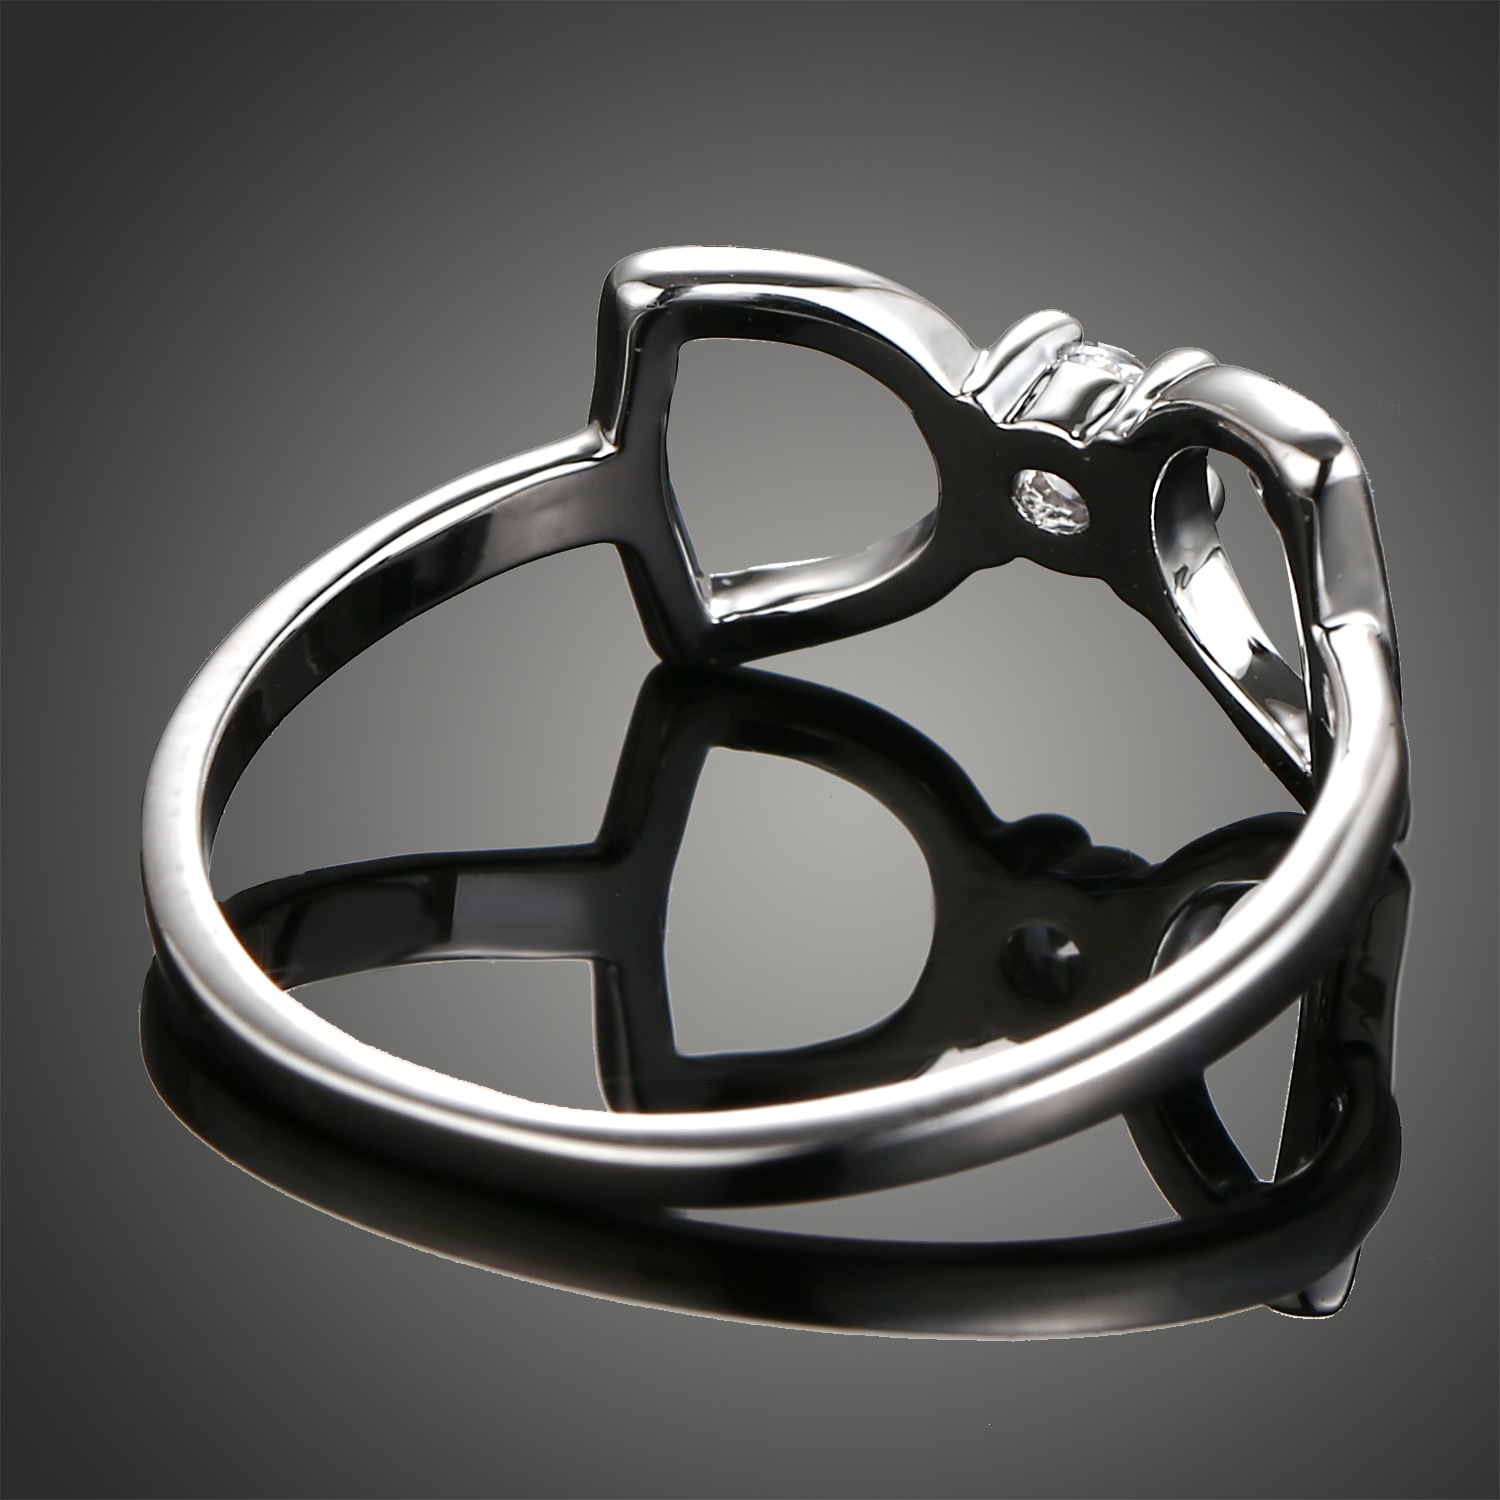 band s valentine wedding couples him gifts for pin engagement gold ring korean promise gift rings